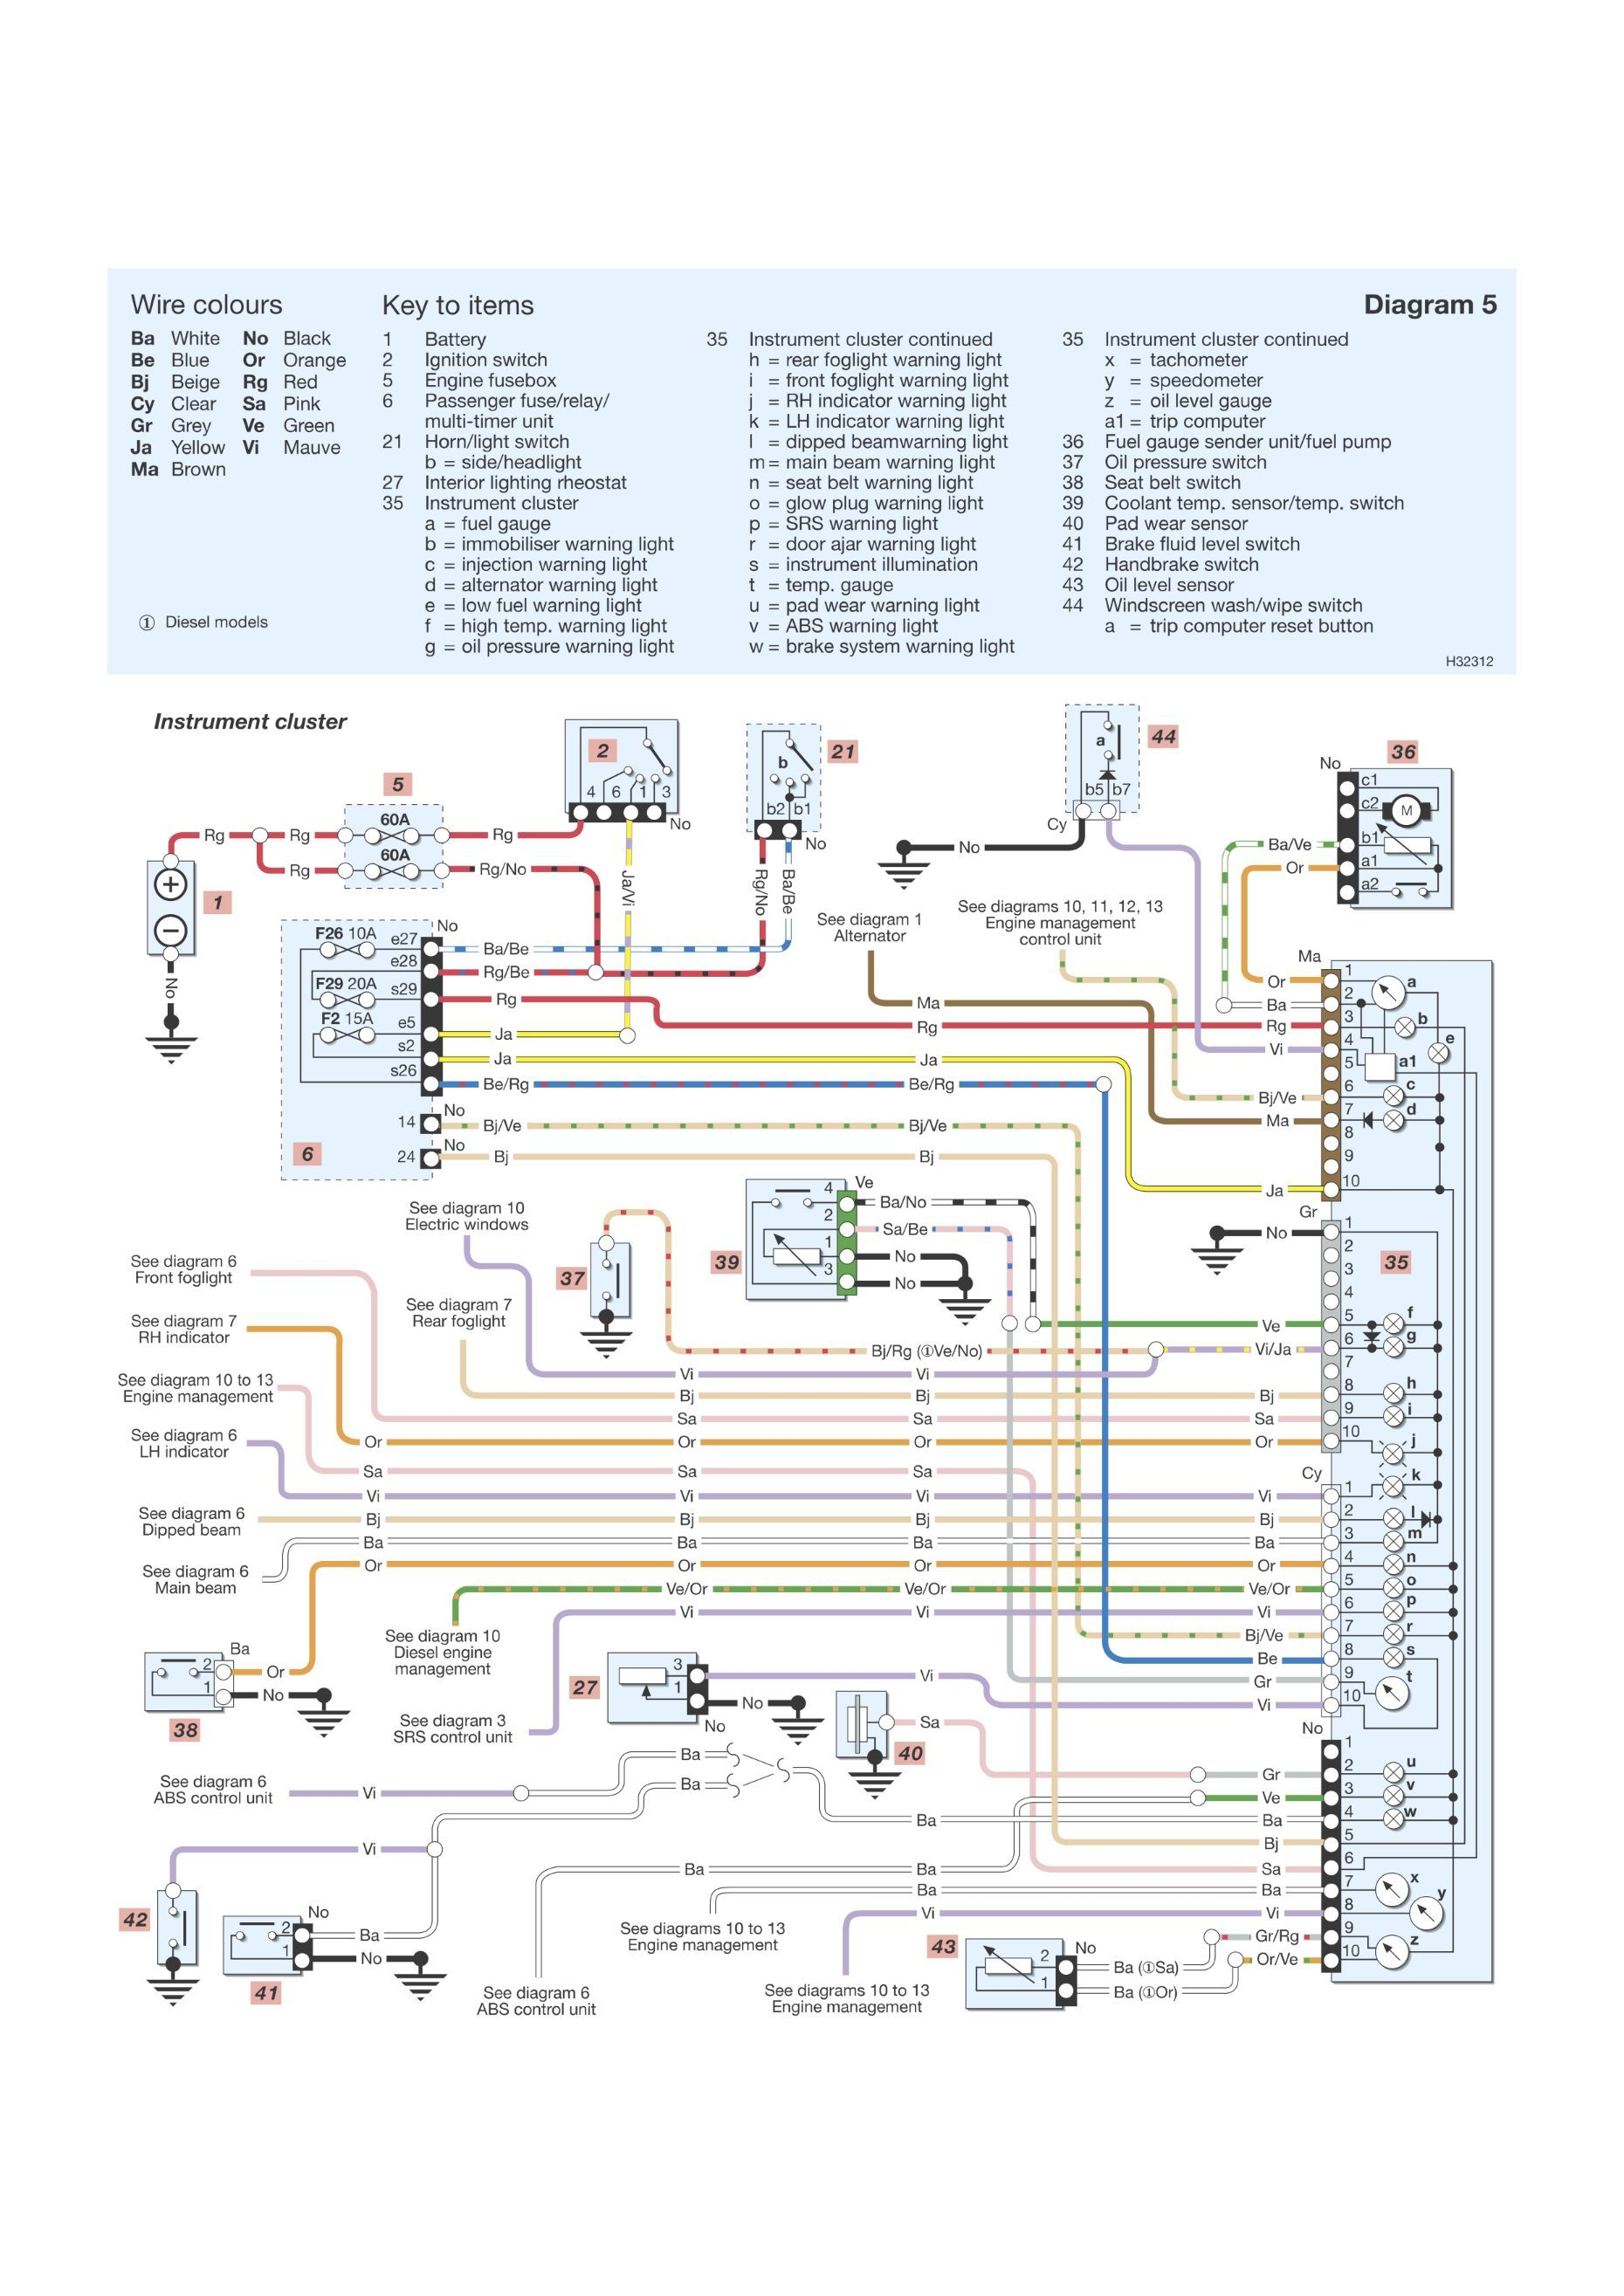 Renault Trafic Wiring Diagram Download Renault, Diagram